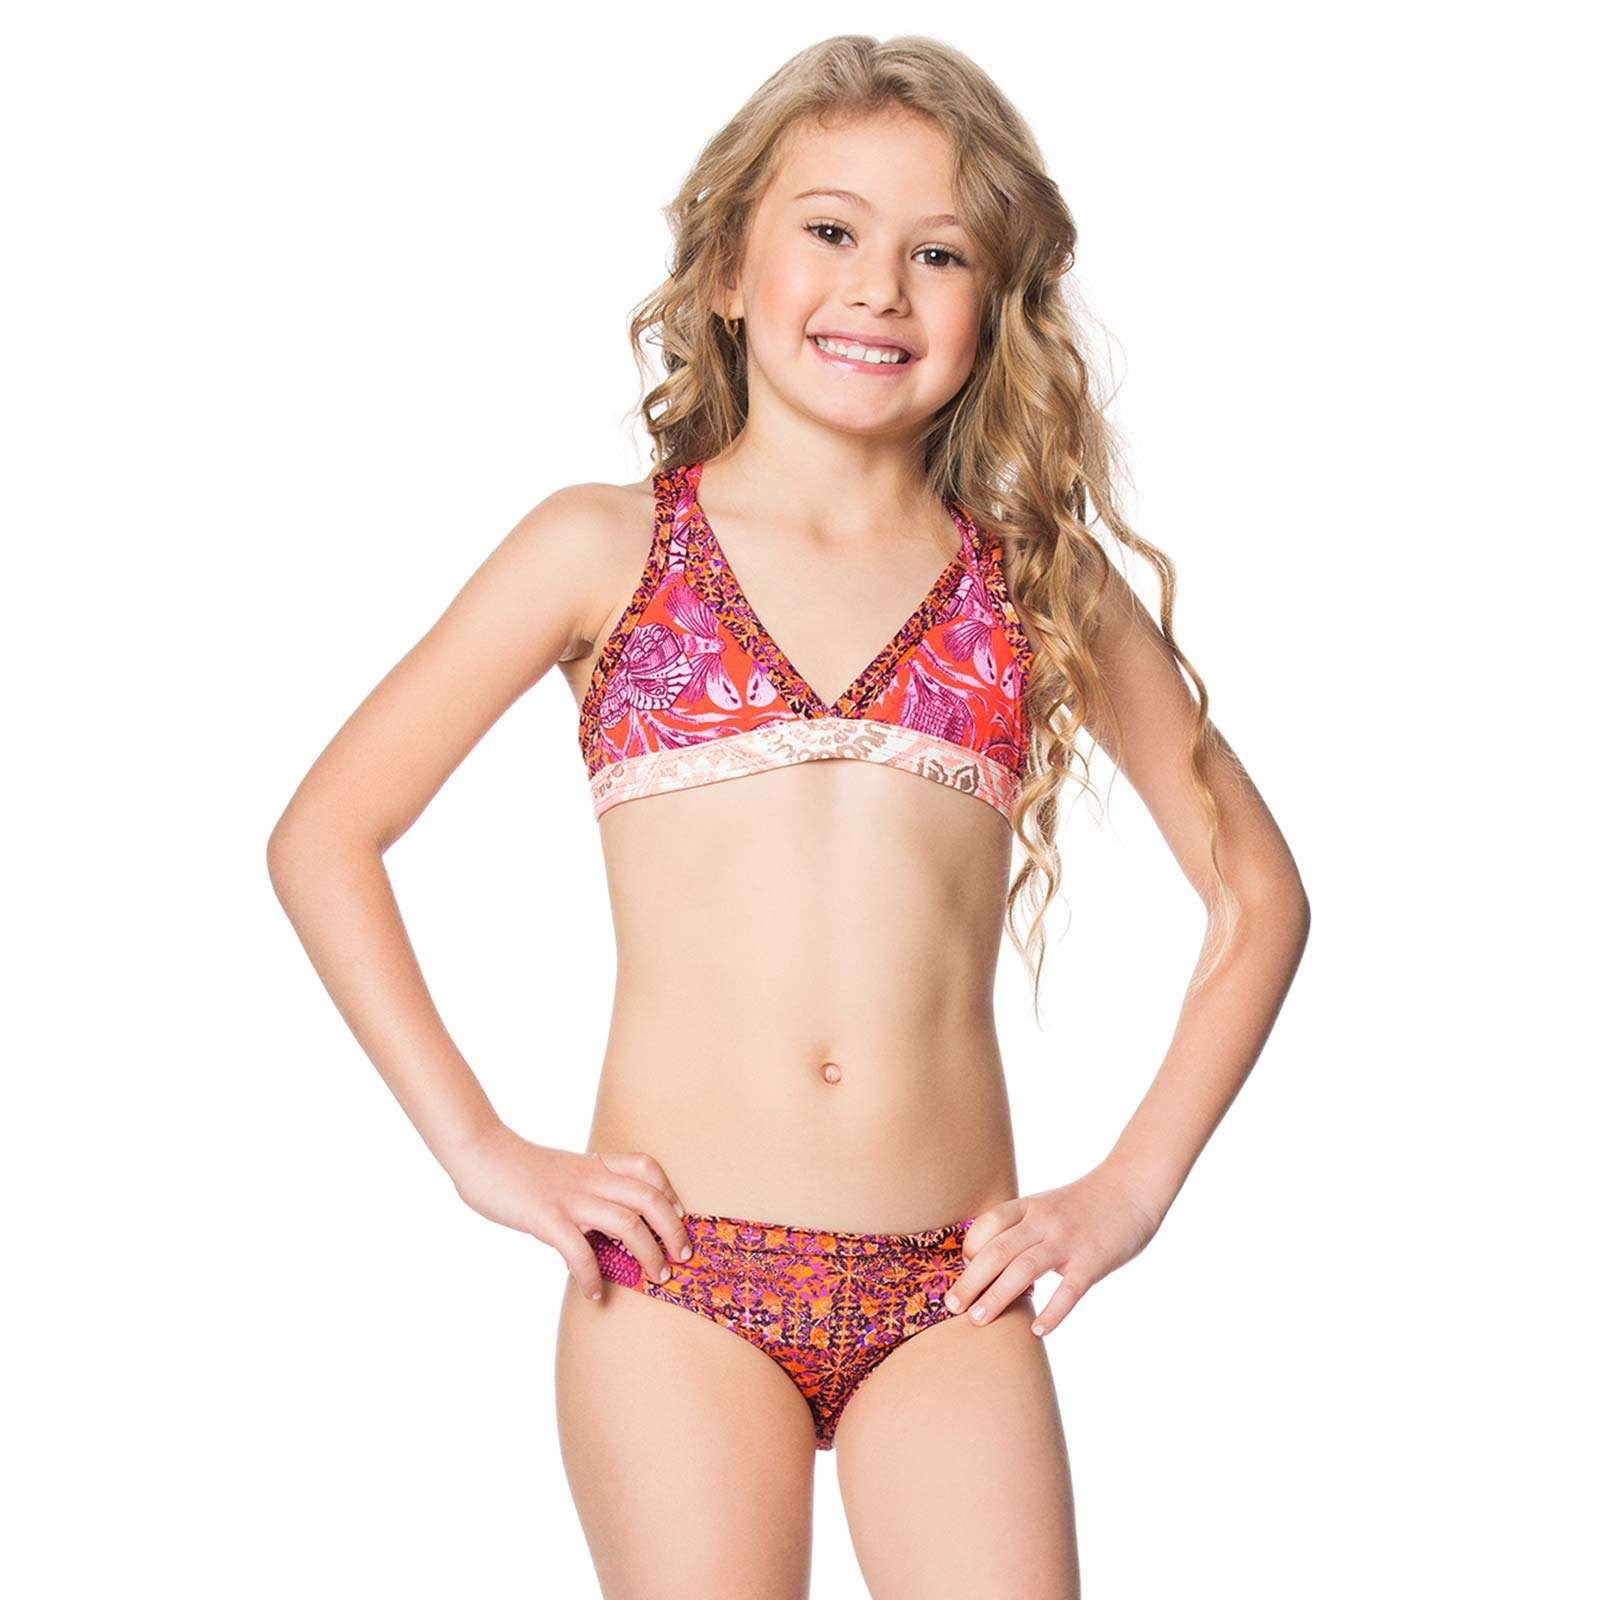 Shop Target for Swimsuits you will love at great low prices. Spend $35+ or use your REDcard & get free 2-day shipping on most items or same-day pick-up in store.